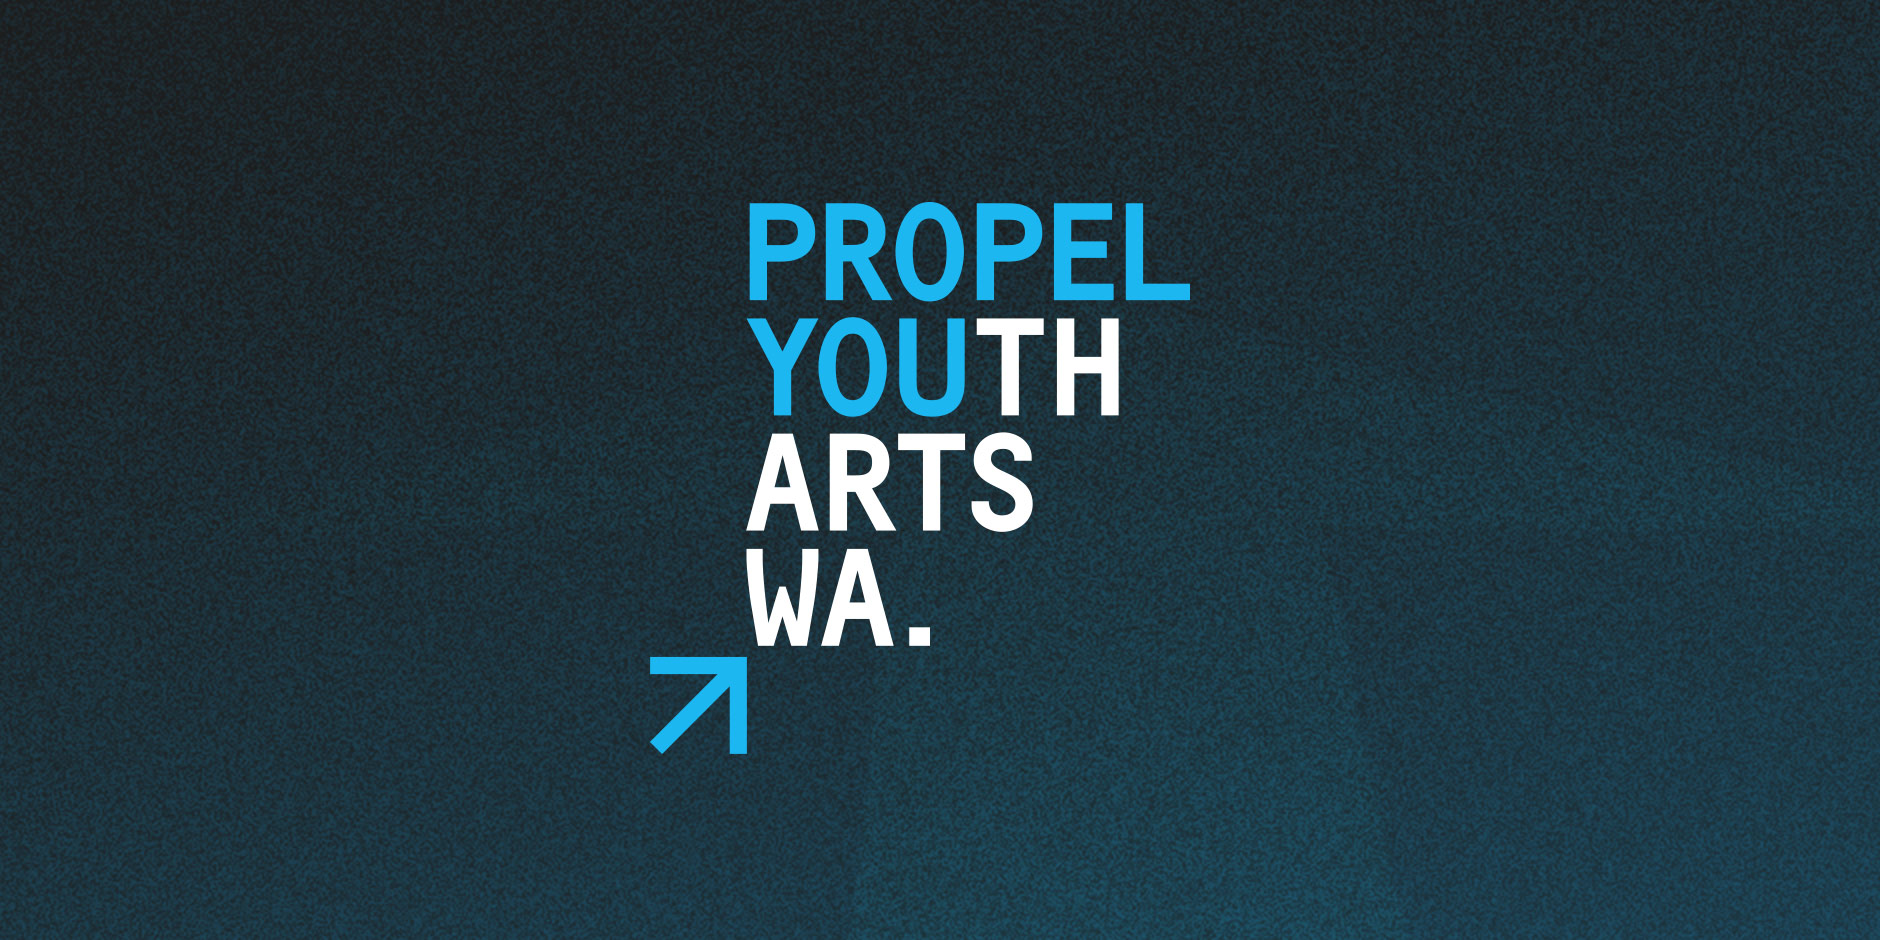 Identity for a non-profit youth arts organisation in WA